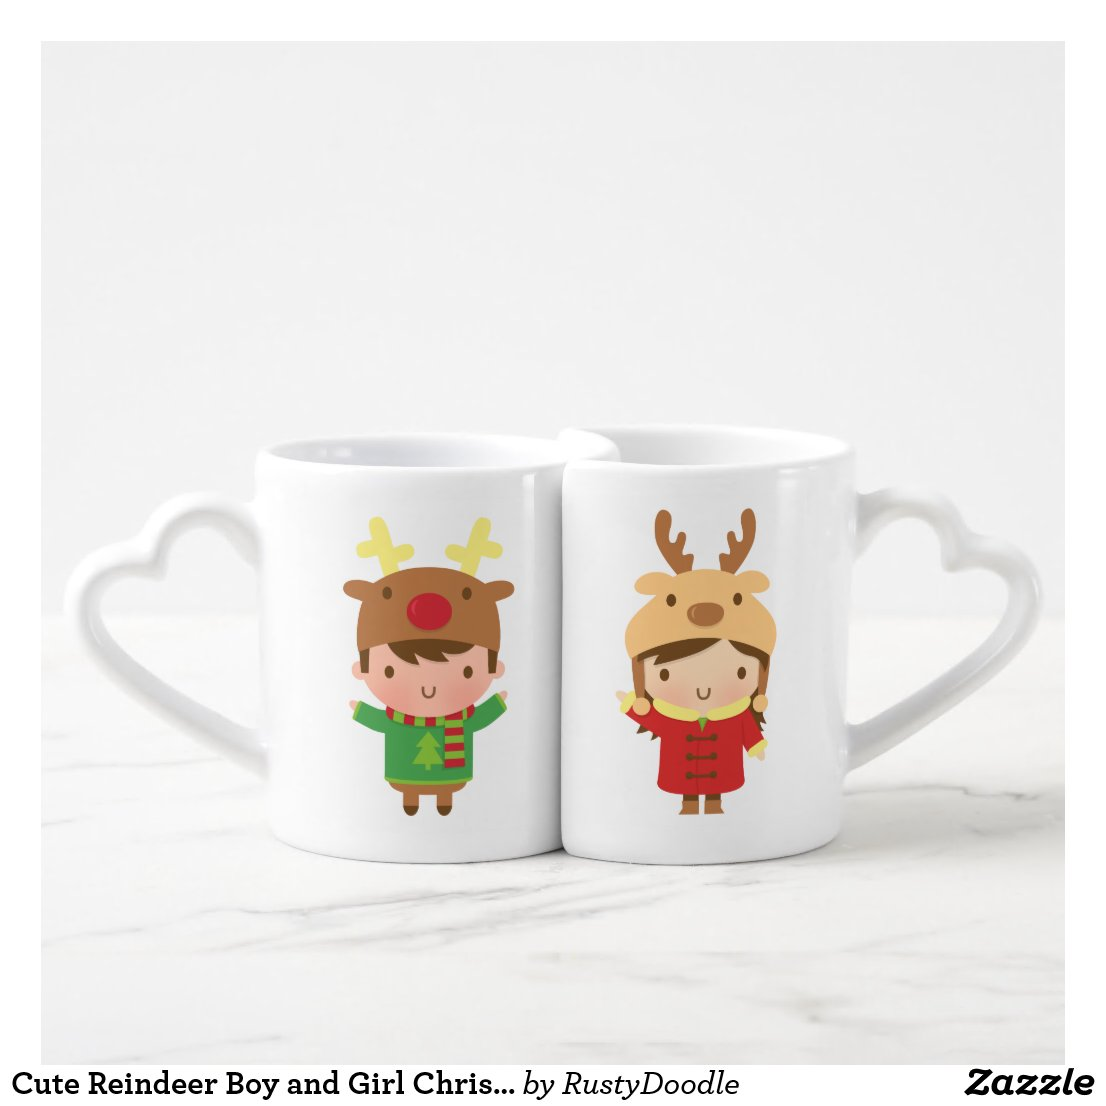 Cute Reindeer Boy and Girl Christmas Coffee Mug Set